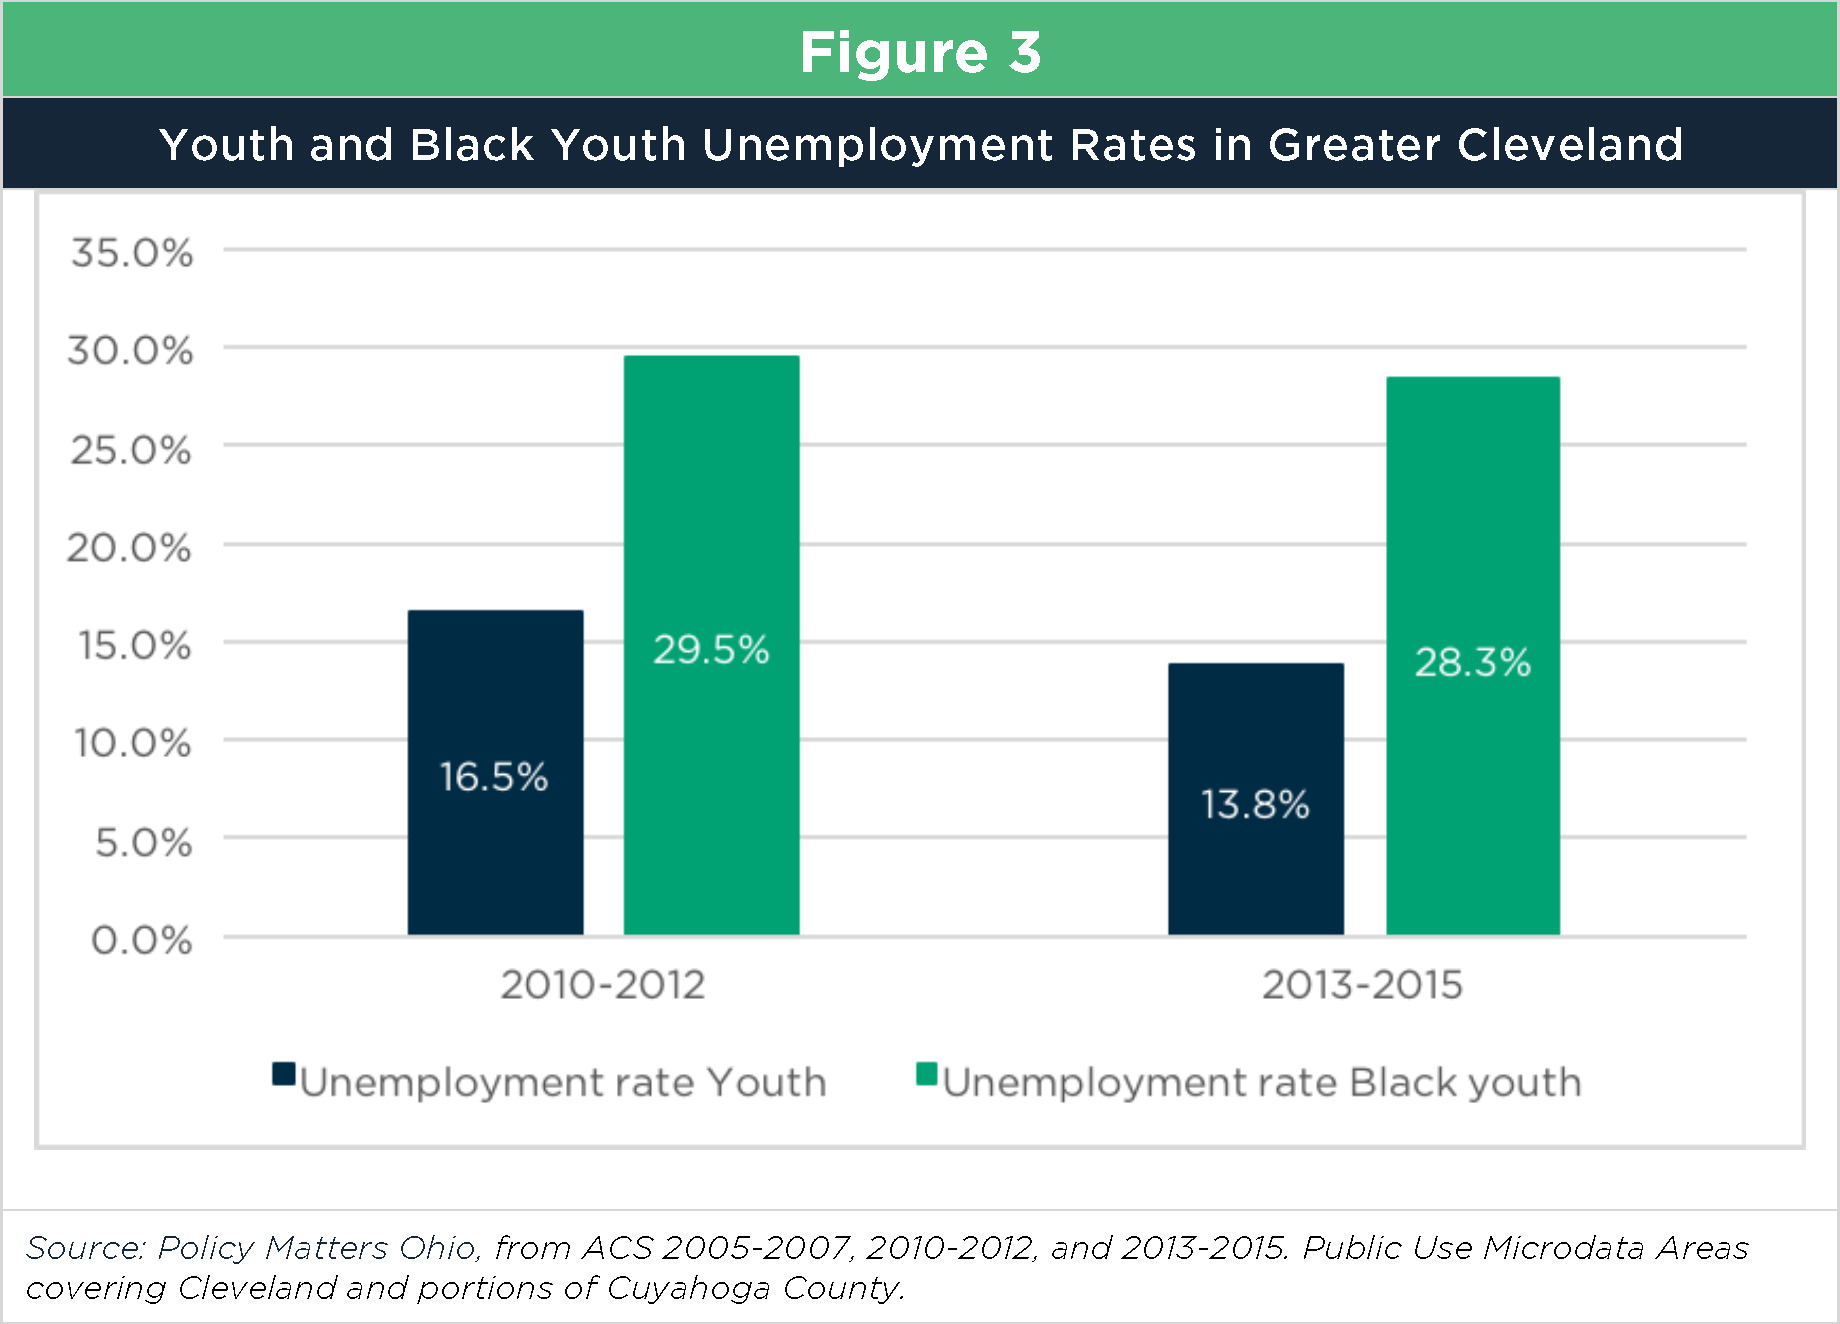 an essay about love marriage unexpectedly